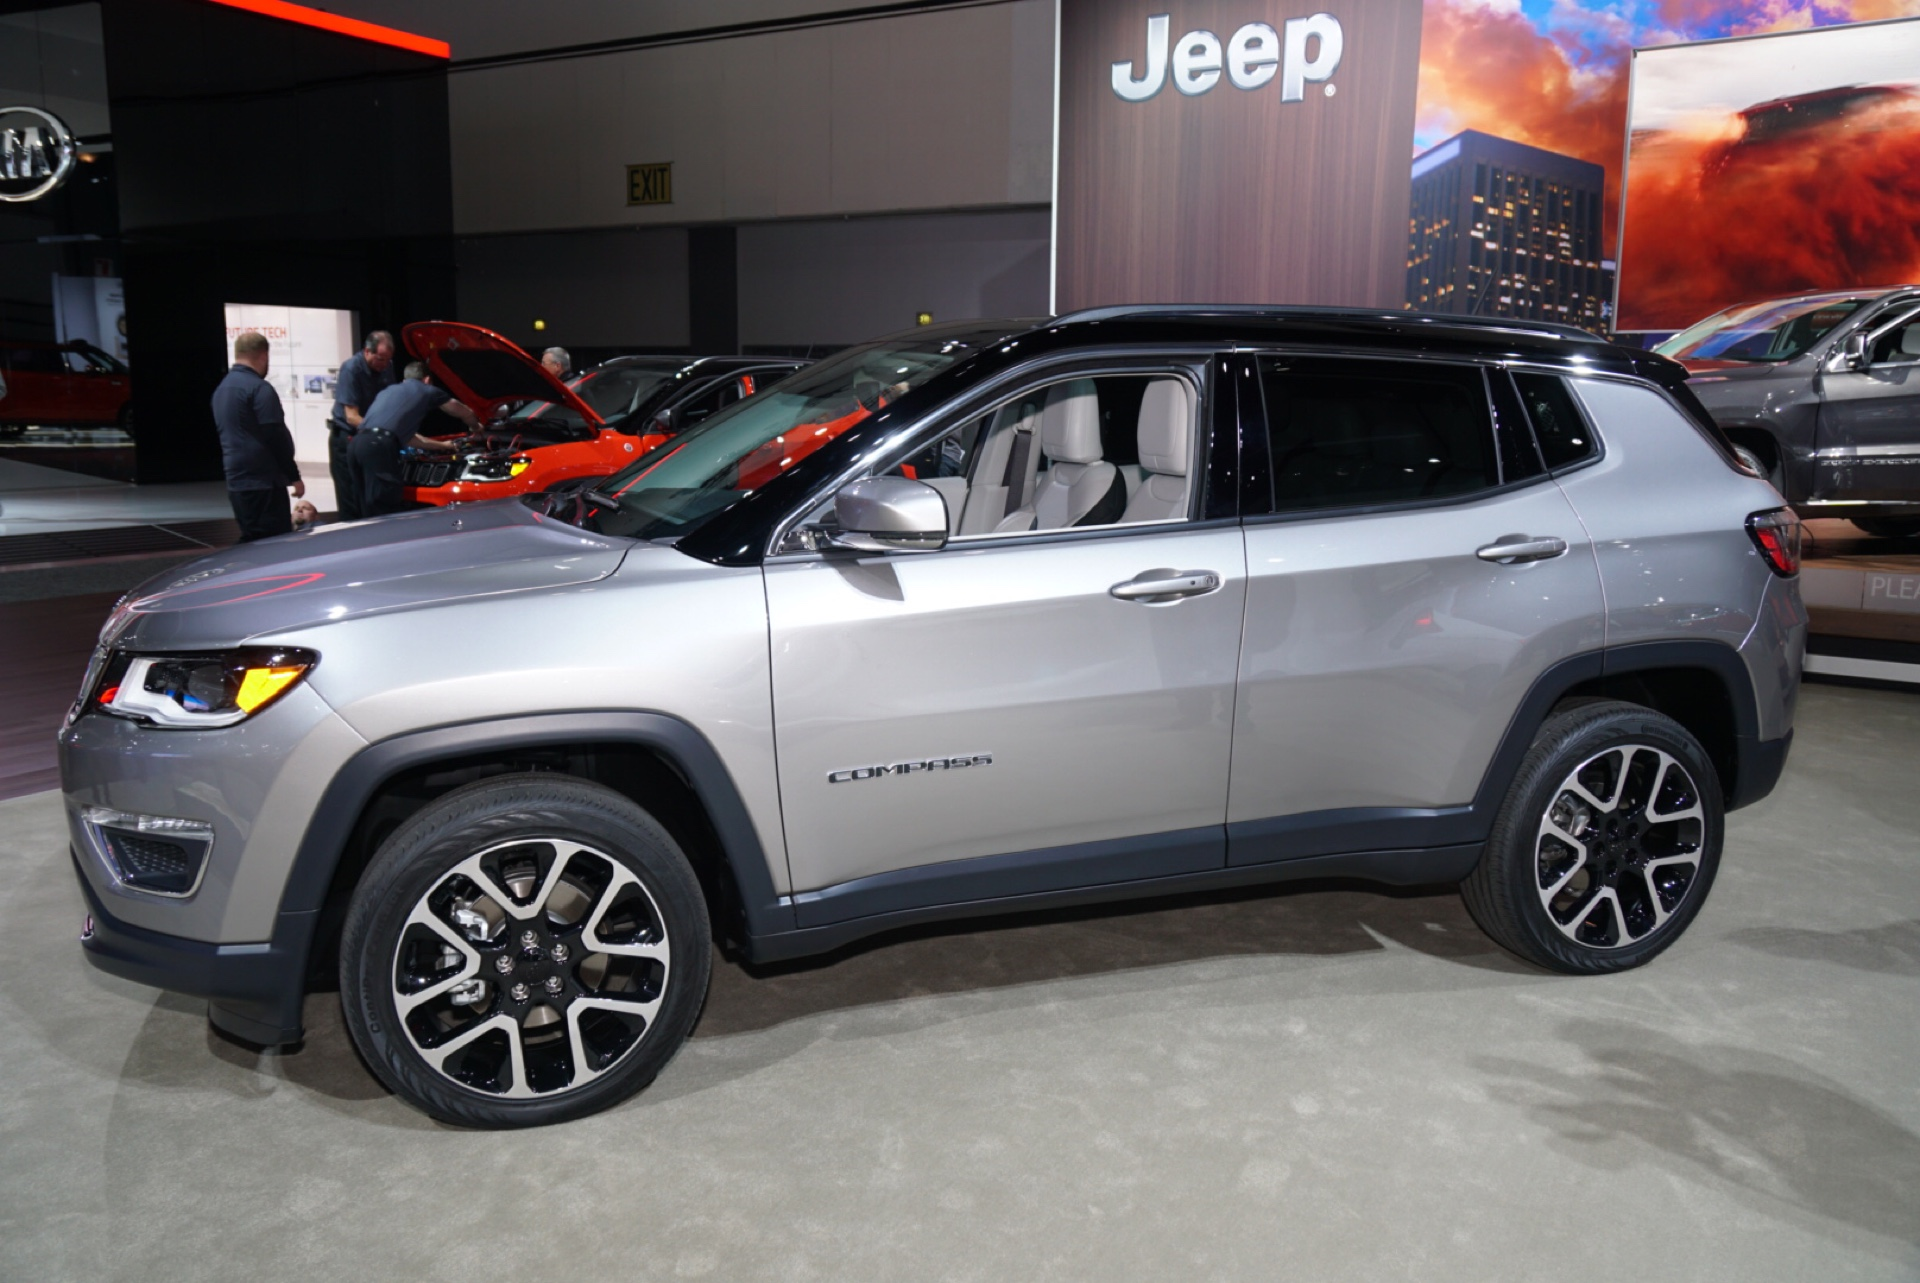 2017 Jeep pass video preview 2016 Los Angeles Auto Show